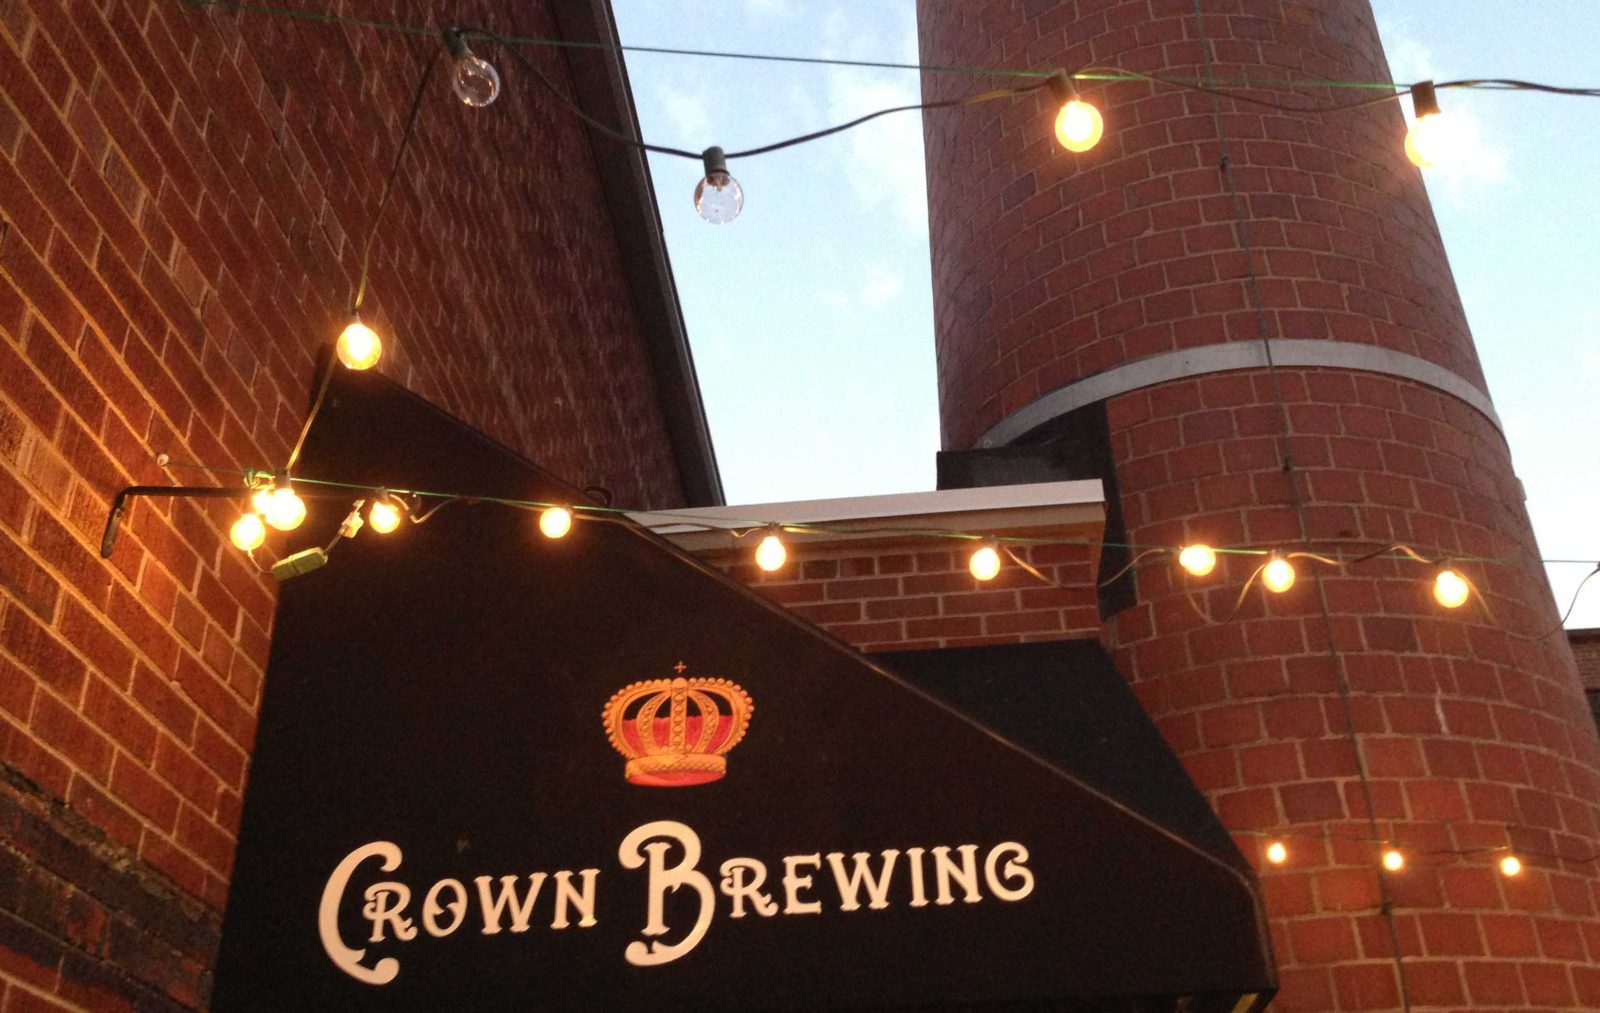 169. Crown Brewery, Crown Point IN 2013